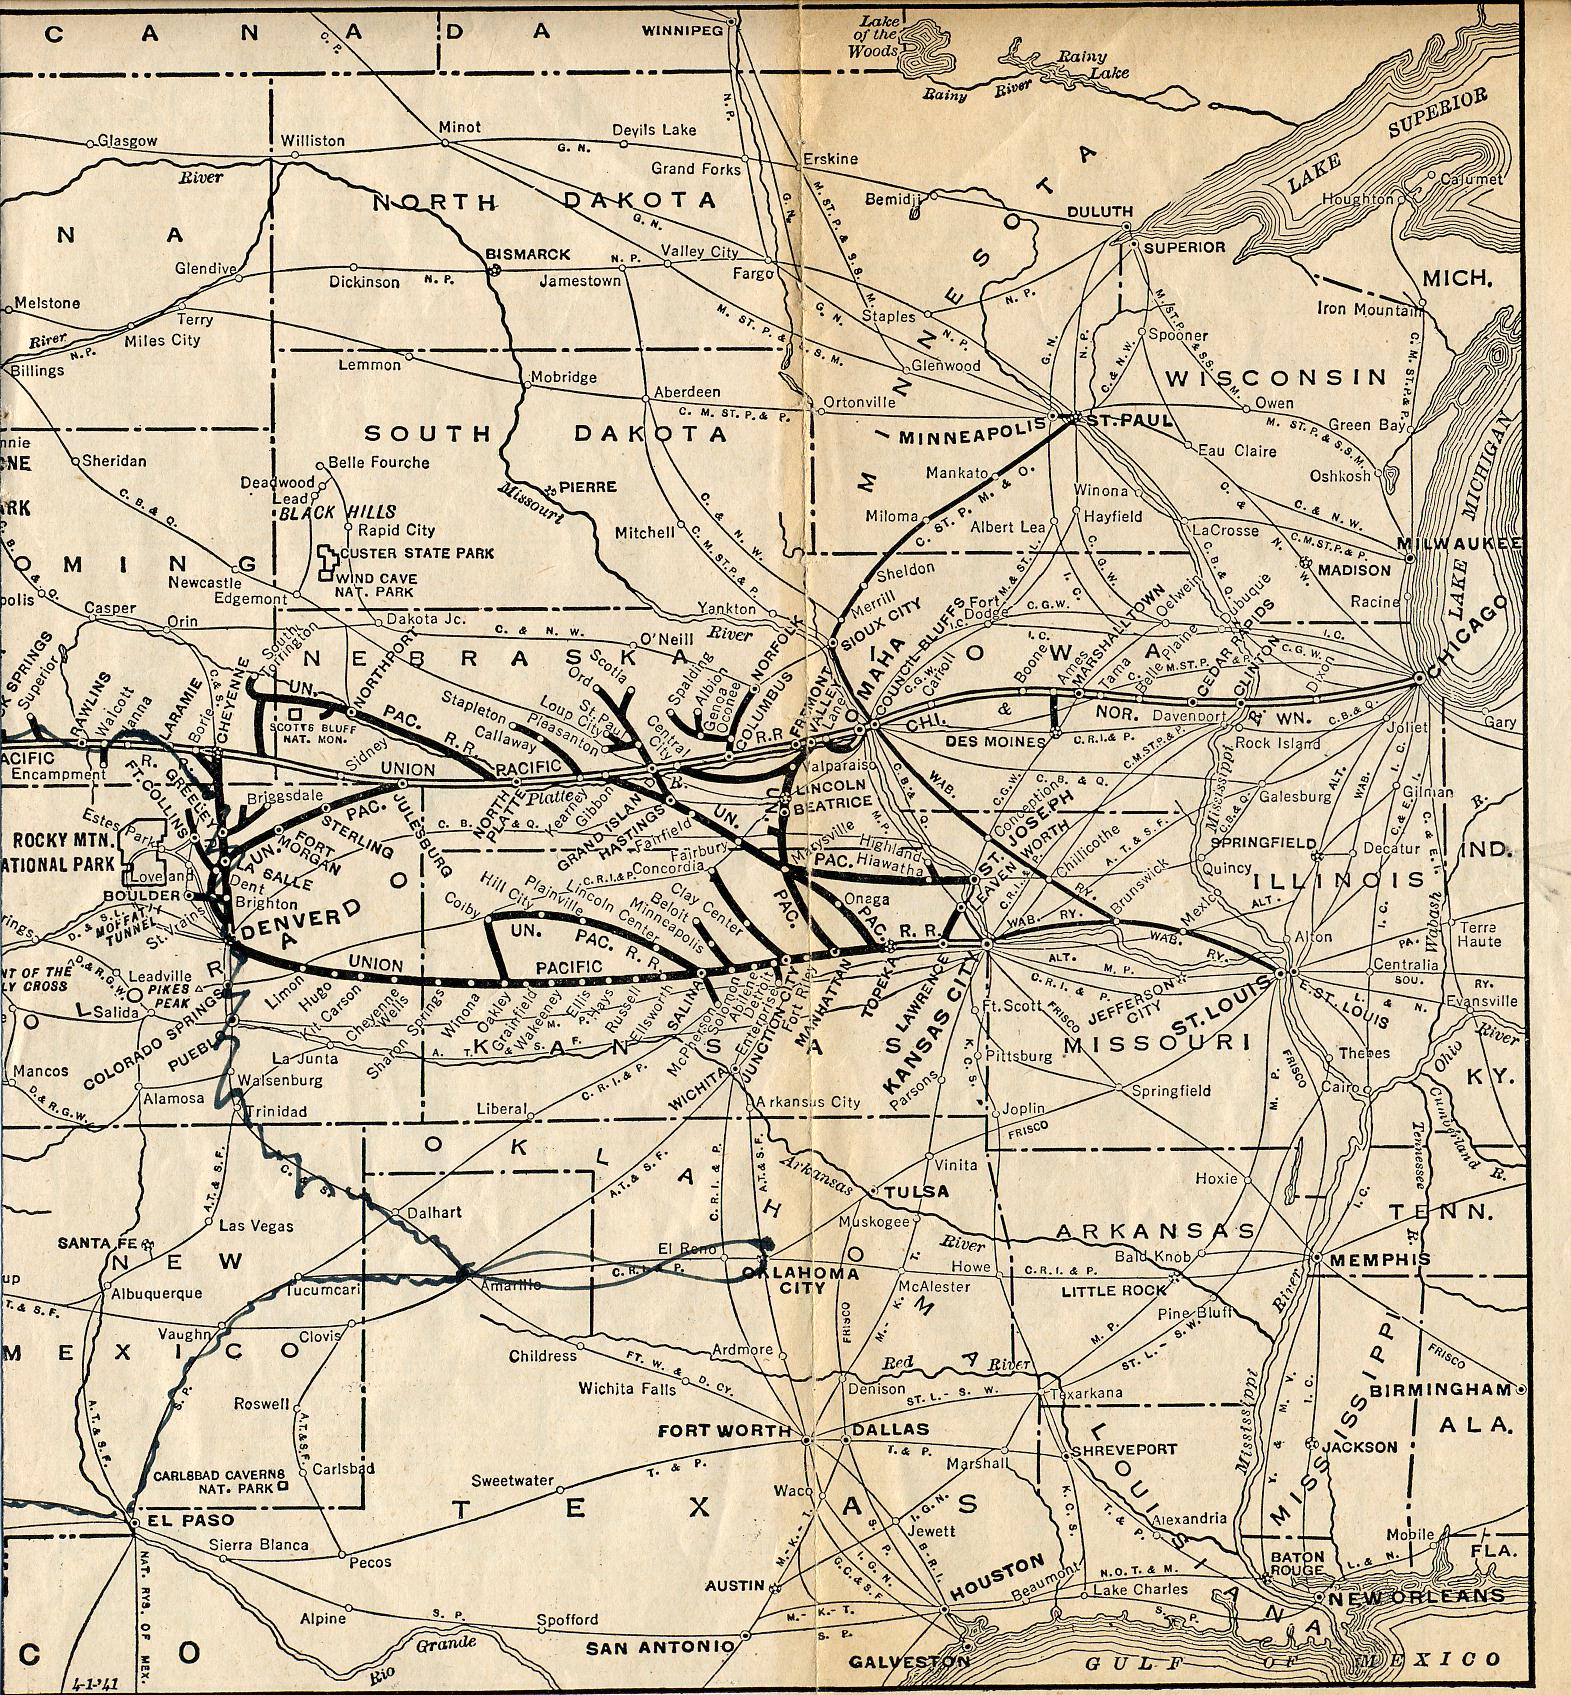 1925 Union Pacific Railroad Map Part 2 US Mappery - Des Moines Iowa On Us Map